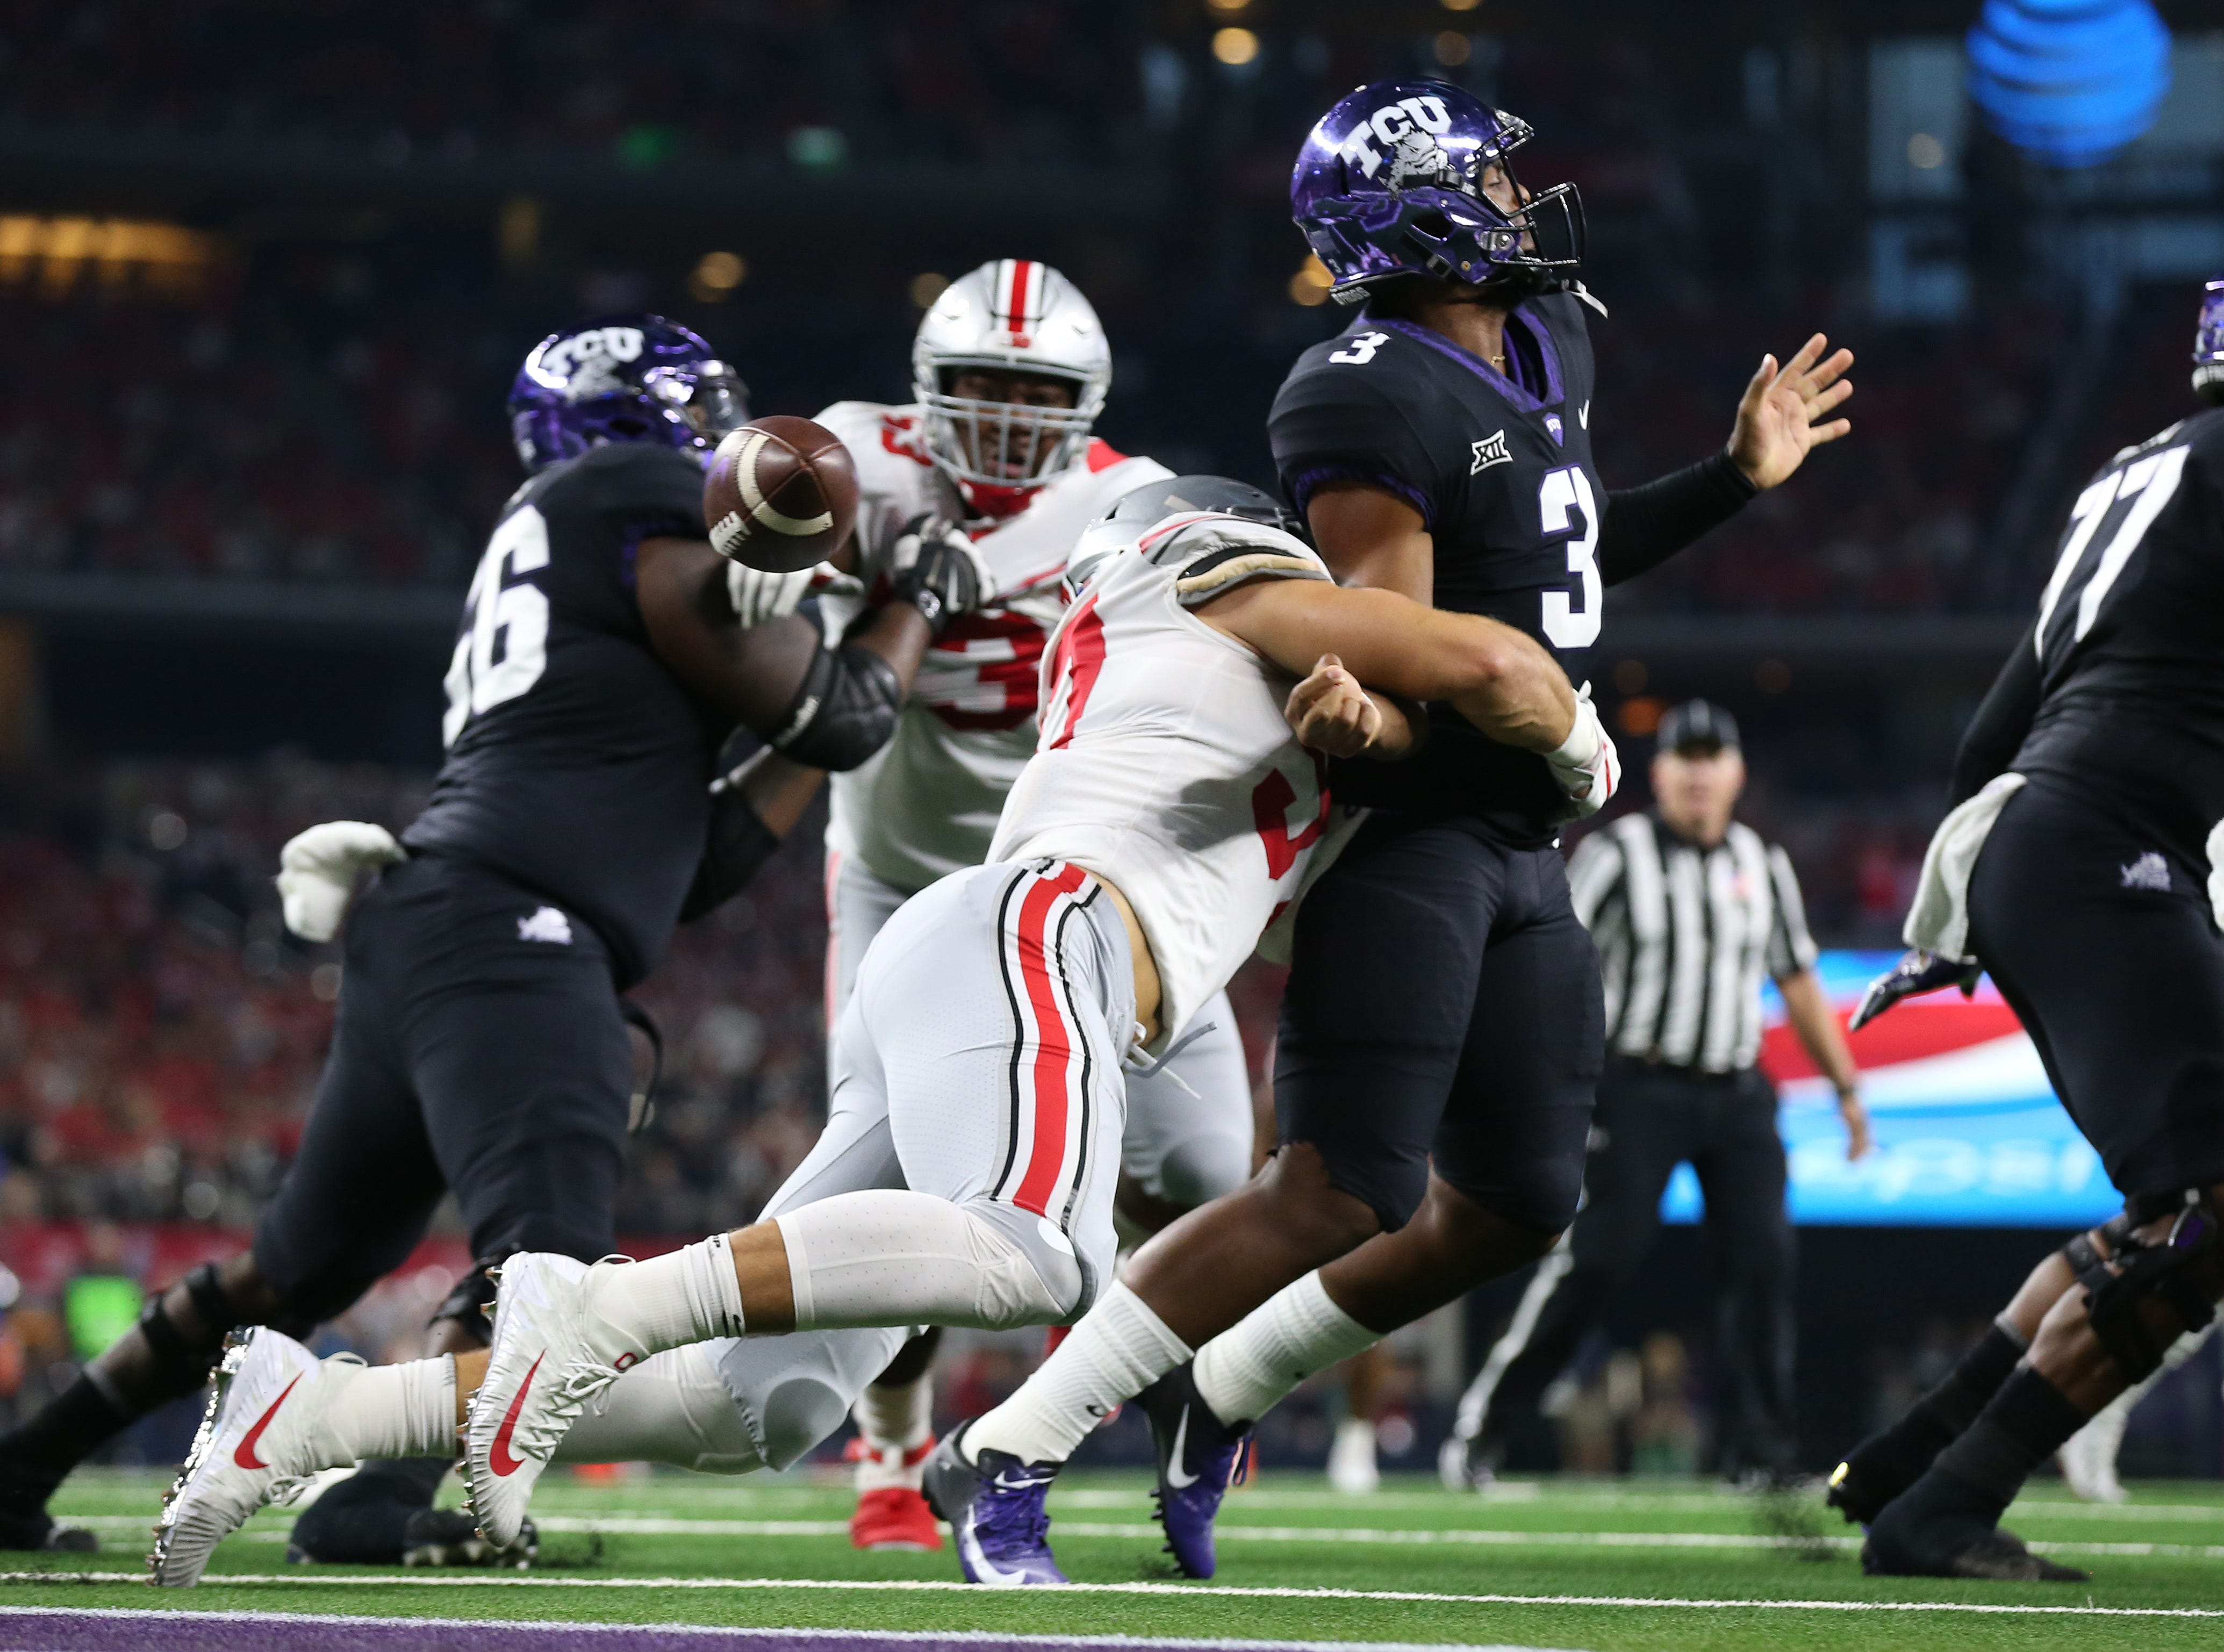 Sept. 15: TCU Horned Frogs quarterback Shawn Robinson (3) has the ball stripped by Ohio State Buckeyes defensive end Nick Bosa (97) at AT&T Stadium.